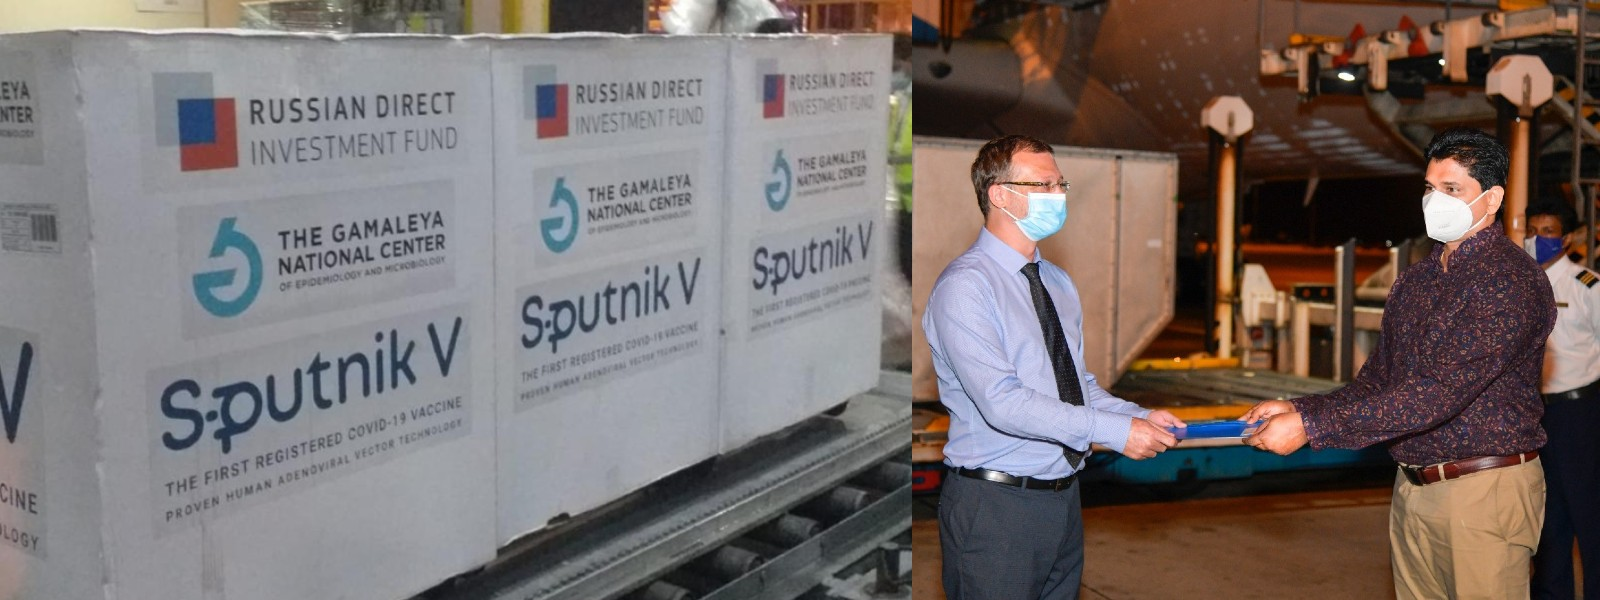 Sri Lanka receives 01st batch of 'Sputnik V' COVID-19 vaccine